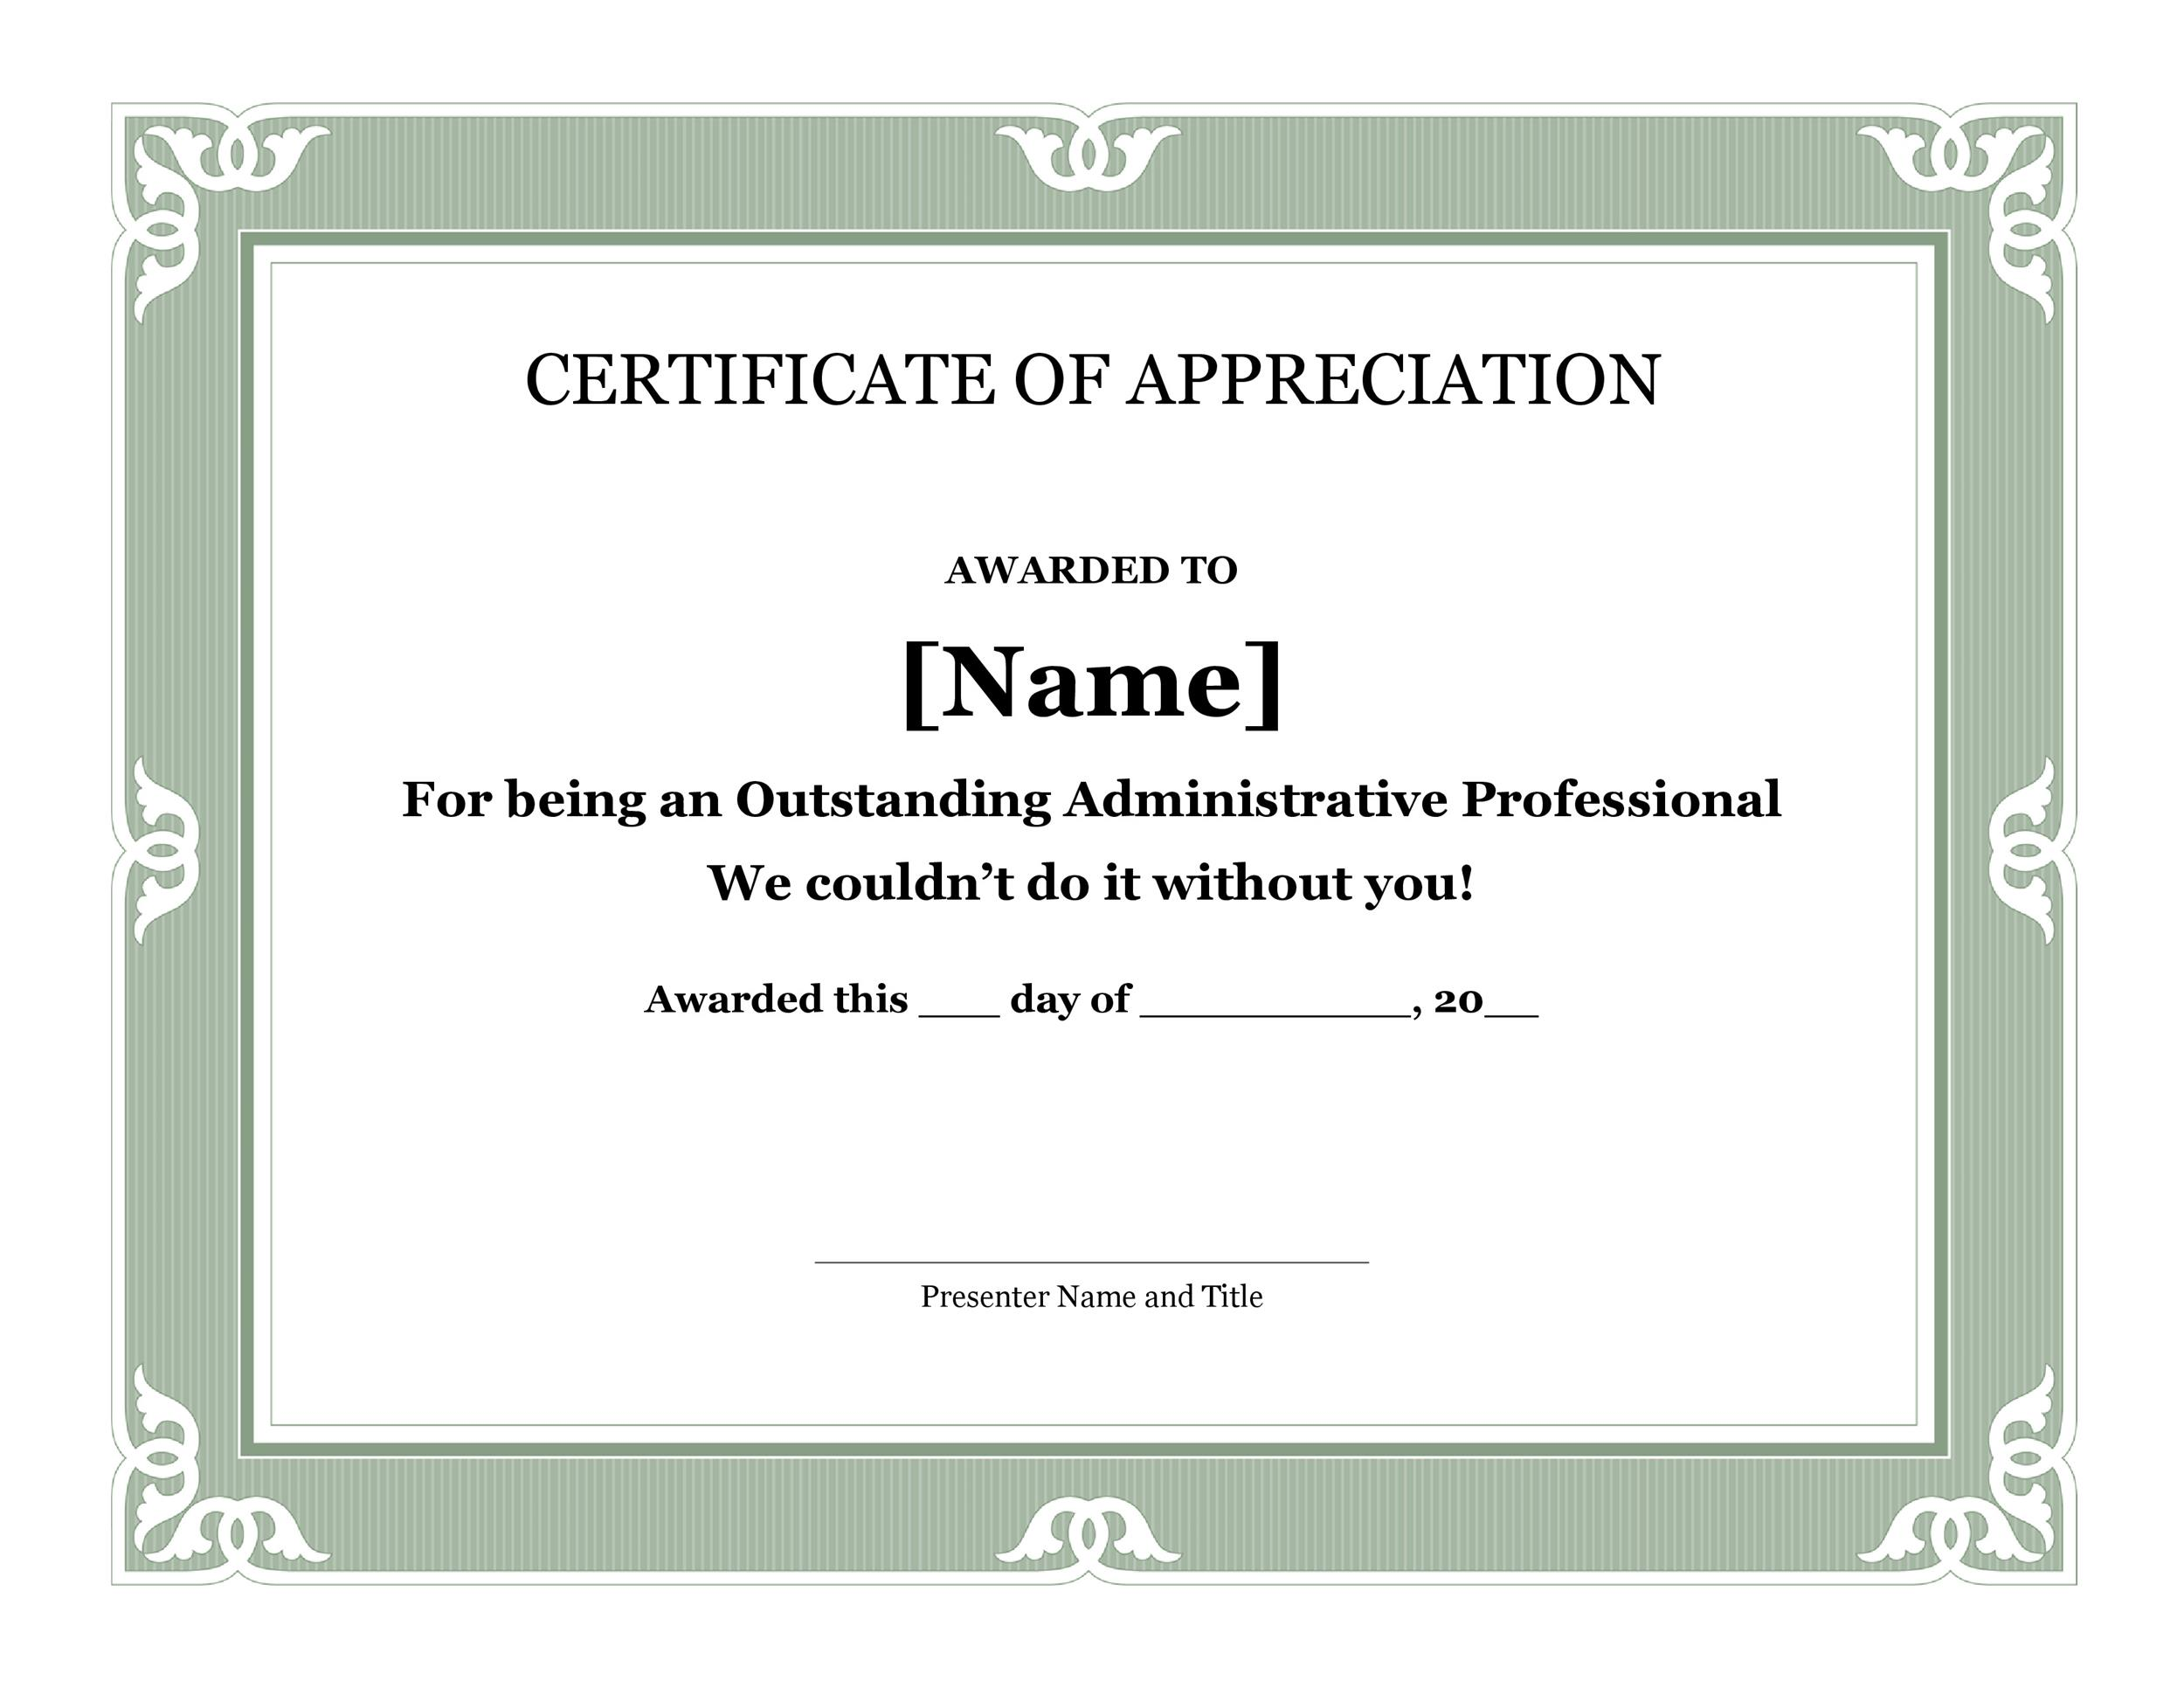 30 free certificate of appreciation templates and letters printable certificate of appreciation 18 yadclub Choice Image